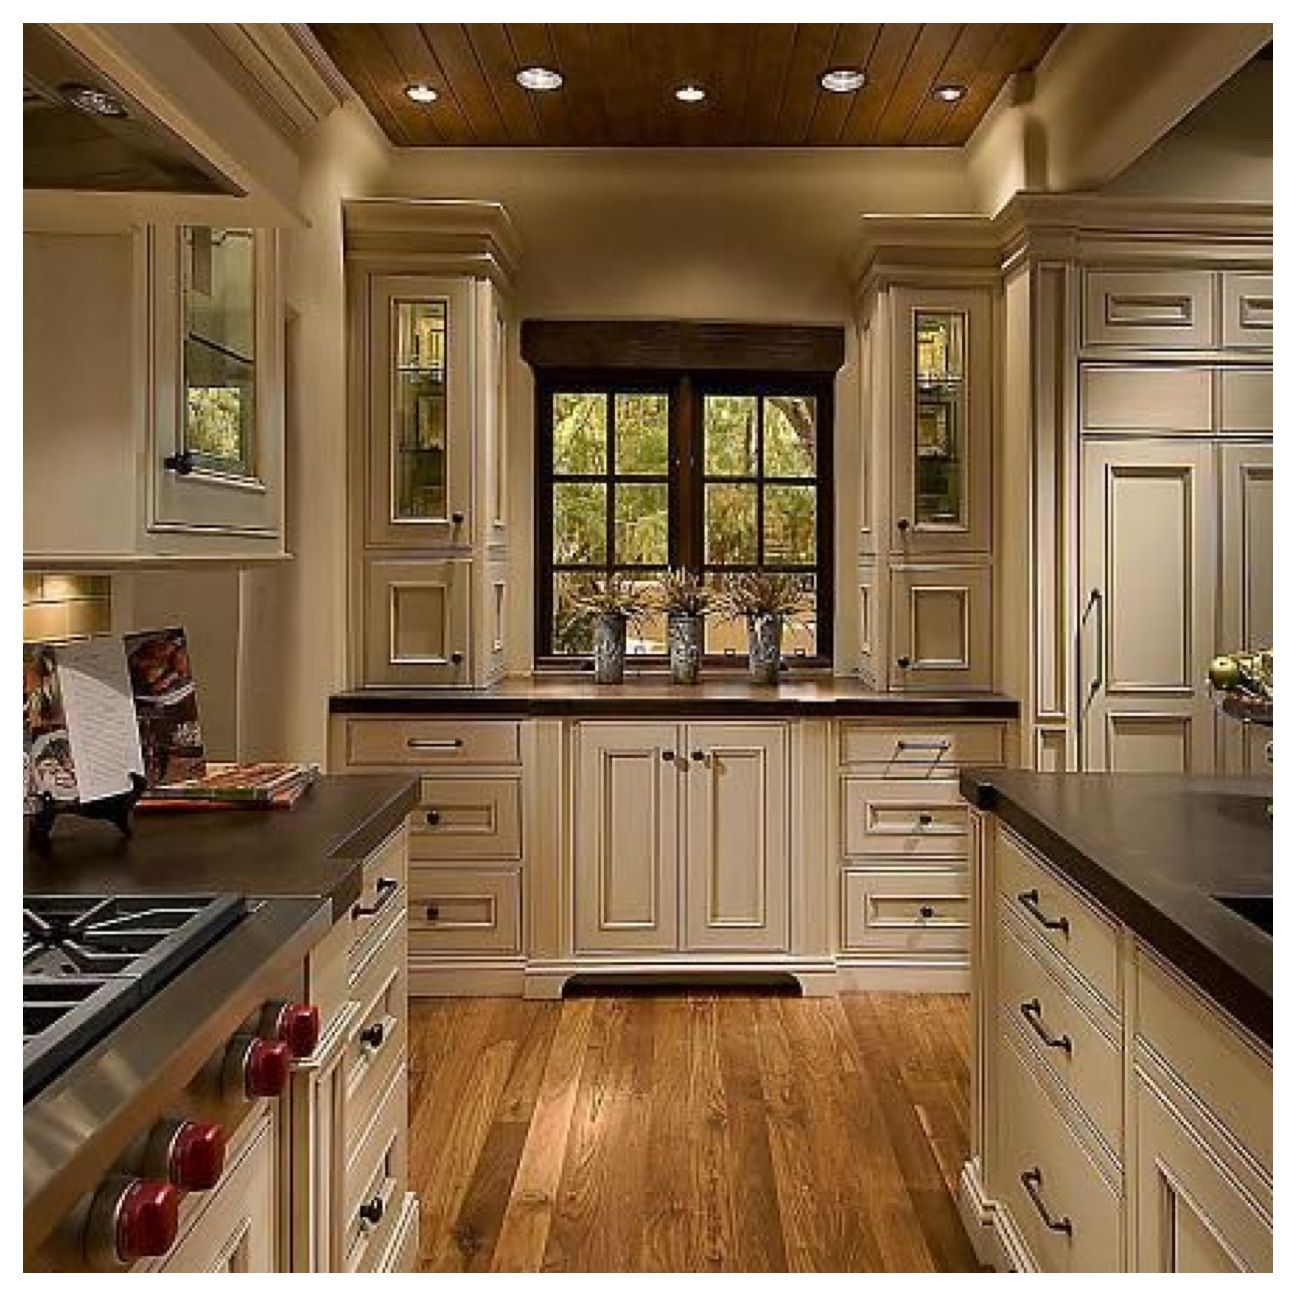 cream colored kitchen cabinets best 25+ cream colored kitchens